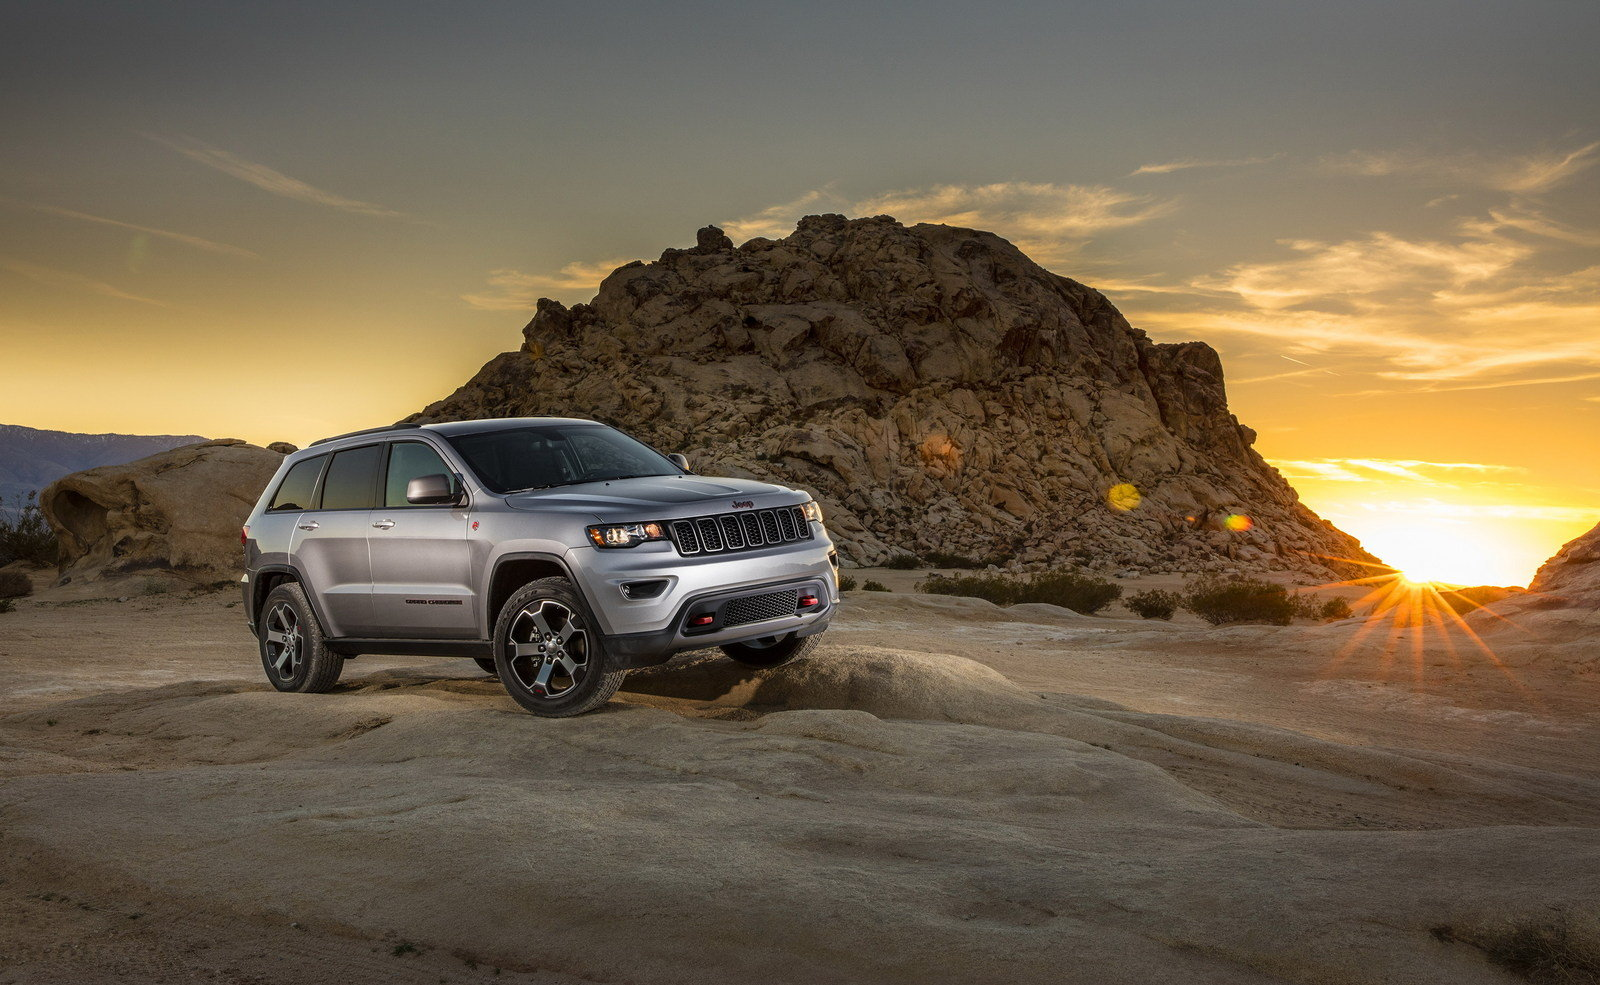 2017 jeep grand cherokee trailhawk picture 670608 car review top speed. Black Bedroom Furniture Sets. Home Design Ideas